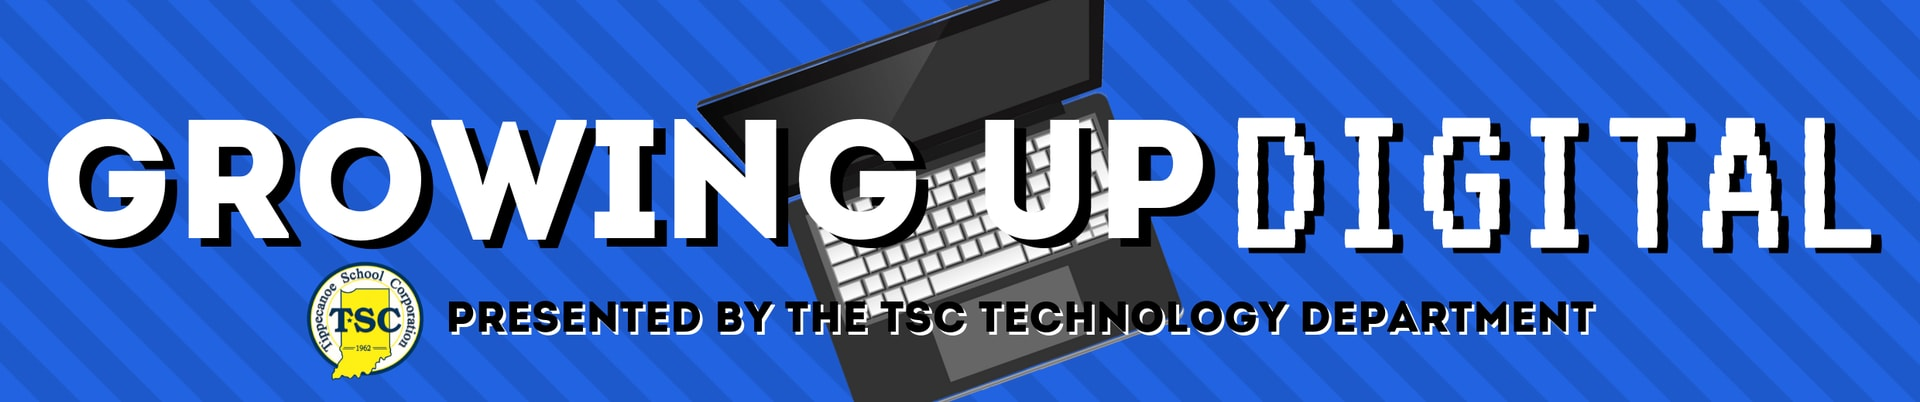 Laptop, Growing up digital presented by the TS Technology Department and TSC Logo